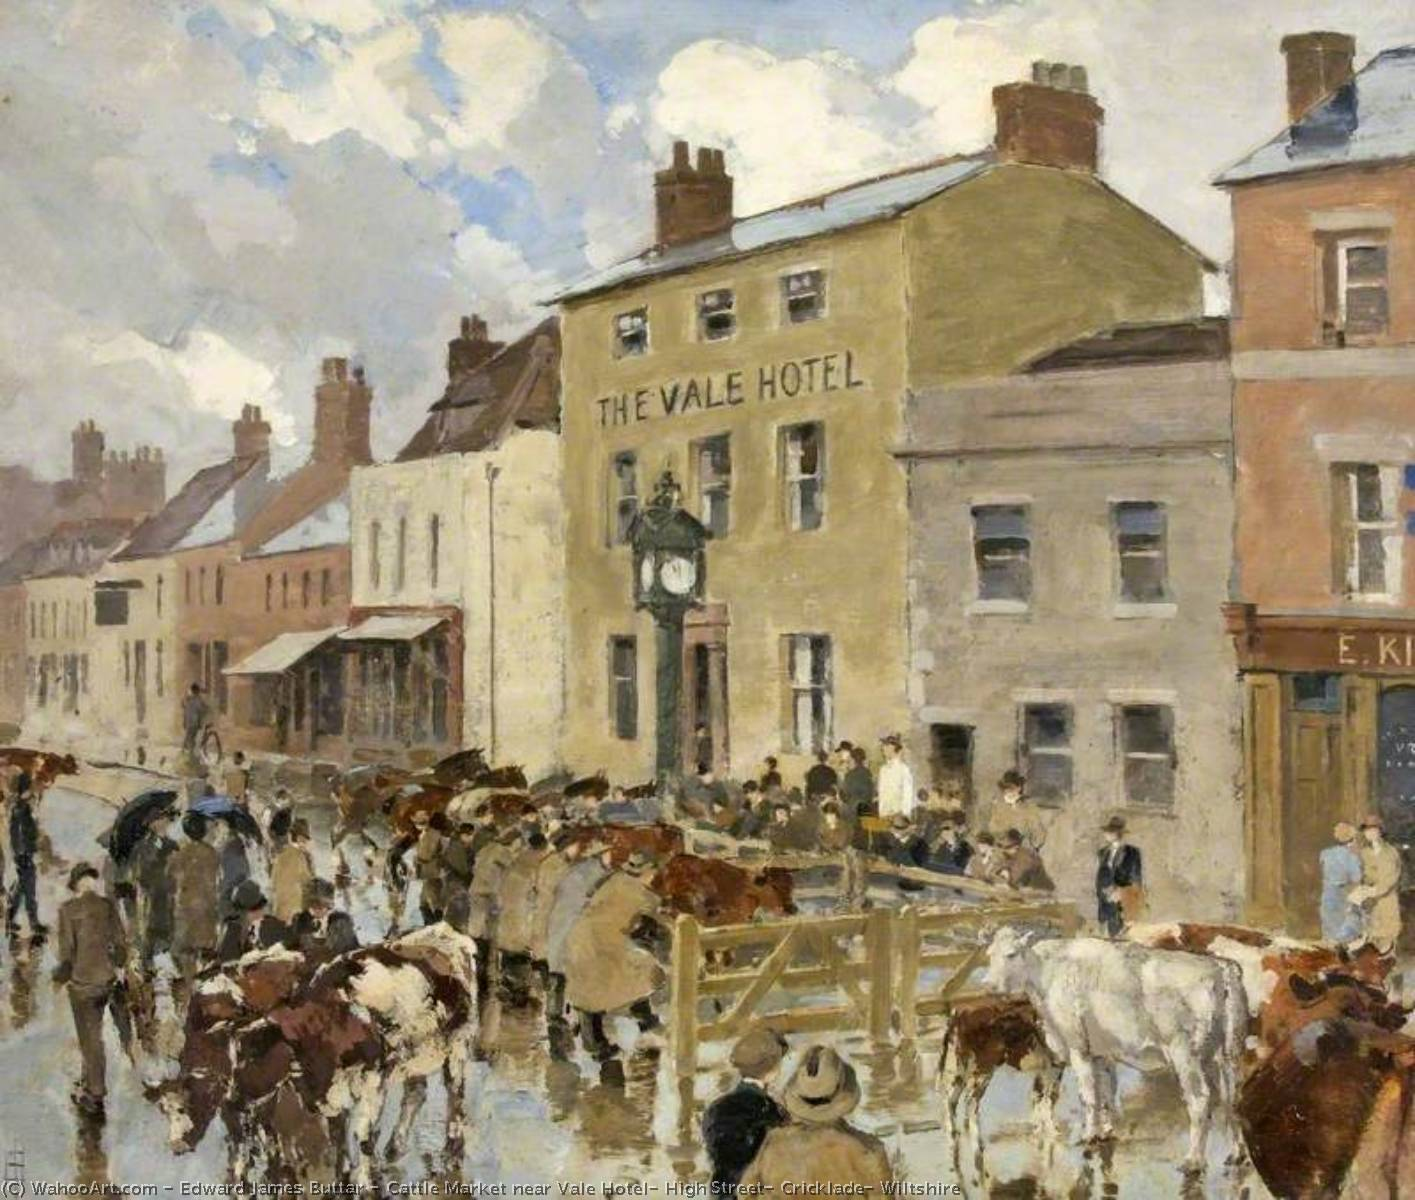 Cattle Market near Vale Hotel, High Street, Cricklade, Wiltshire, 1920 by Edward James Buttar | Reproductions Edward James Buttar | WahooArt.com